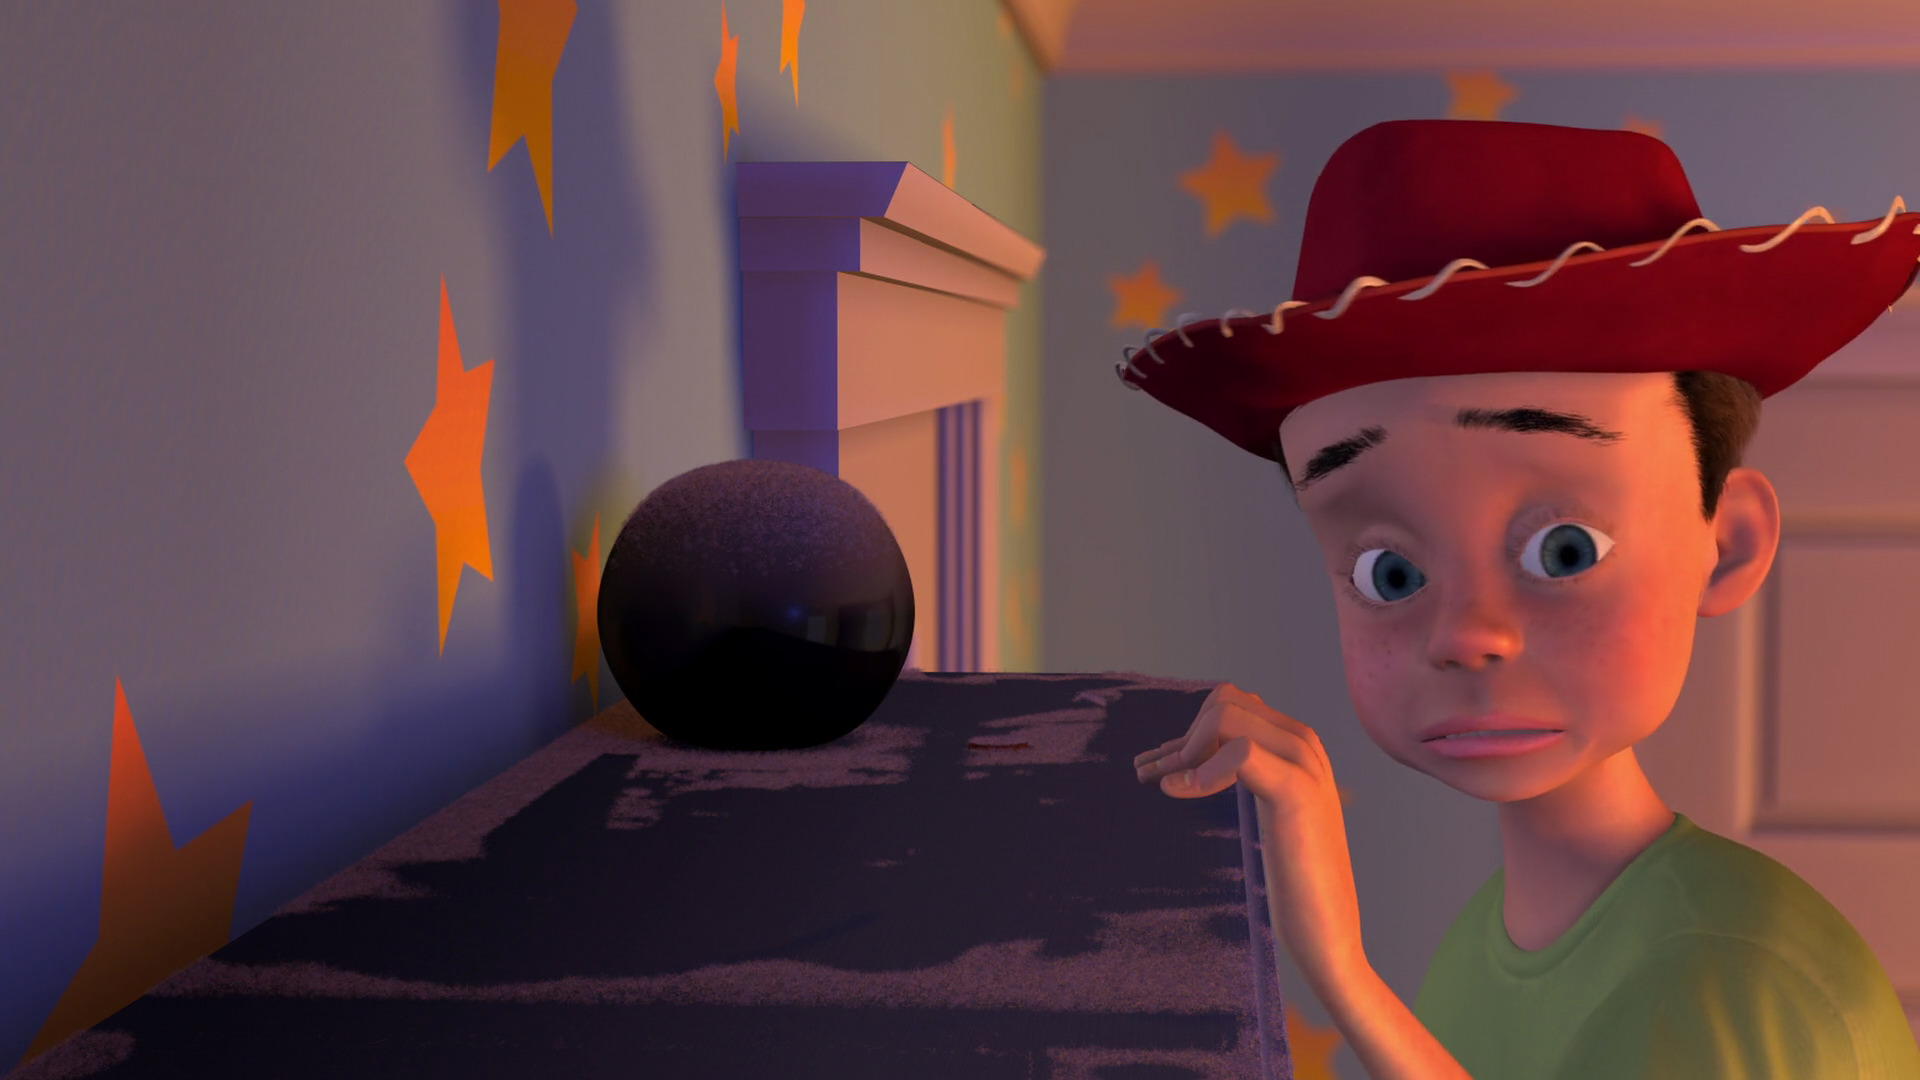 Andy appears in one of Woody s nightmares where the two are reunited after  his holiday but the cowboy gets thrown away after the little boy notices  his torn. Andy Andrew Davis  character from  Toy Story     Pixar Planet Fr